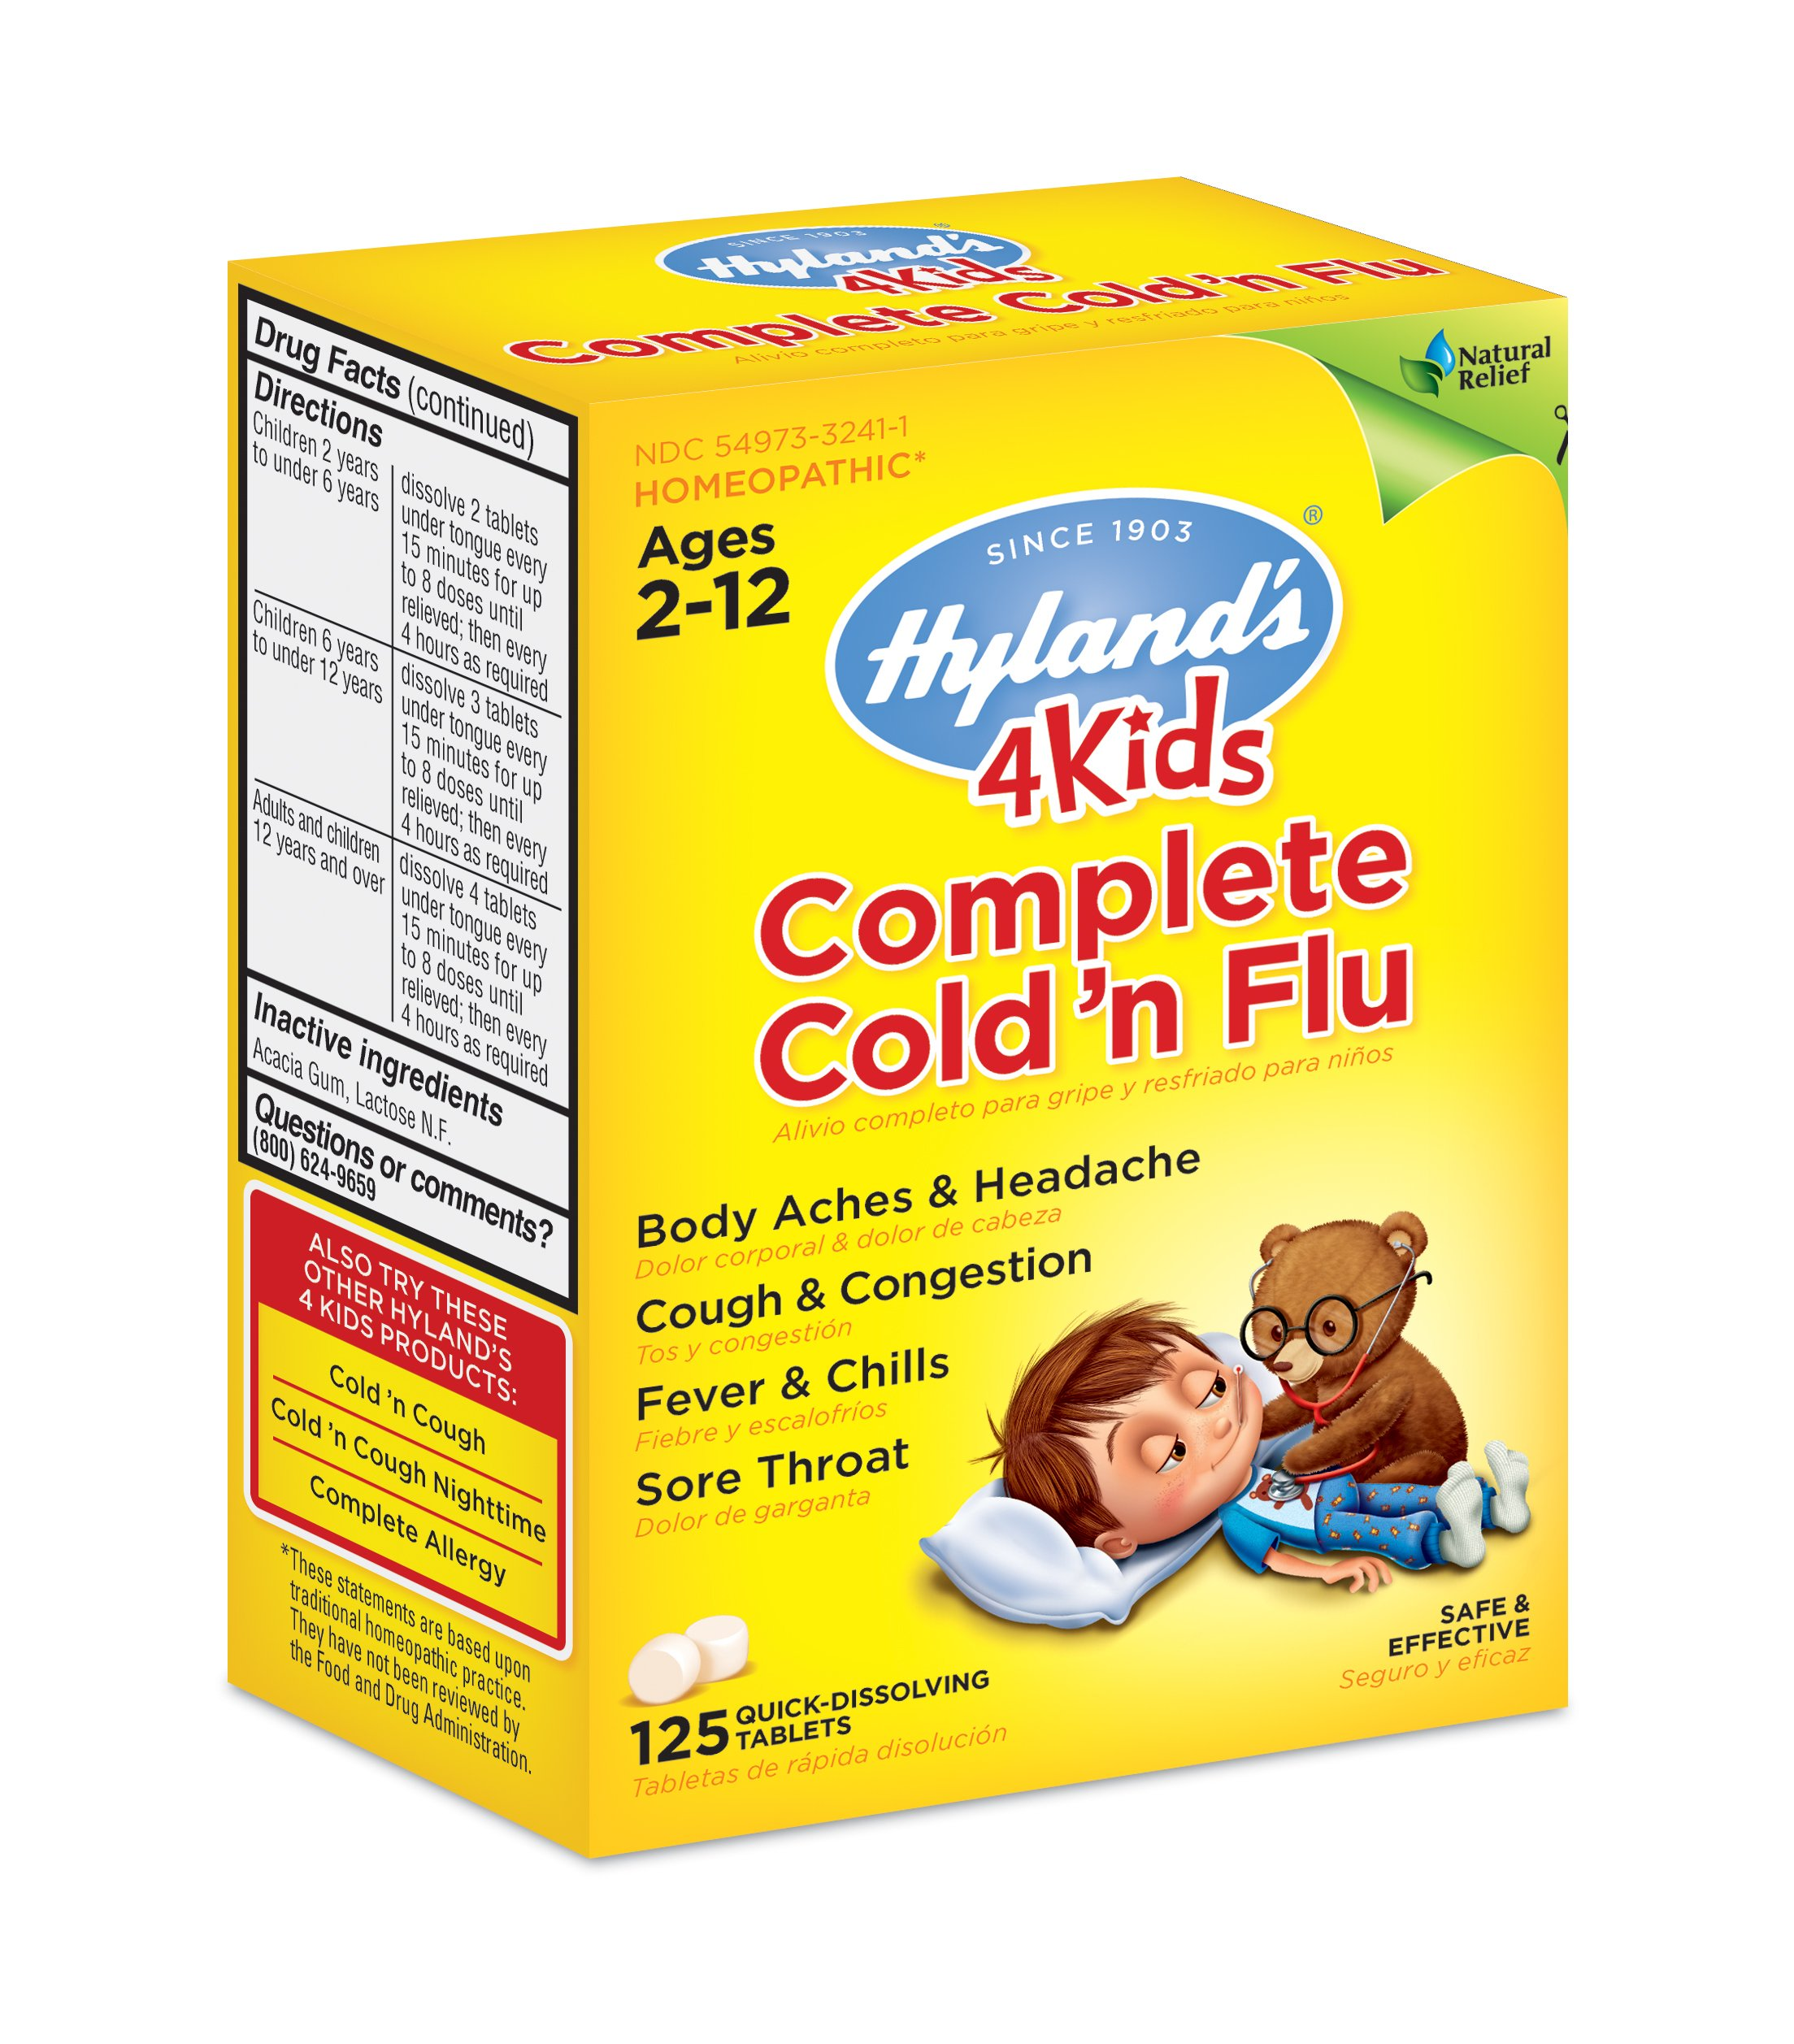 Hyland's 4 Kids Complete Cold 'n Flu, Natural Relief of Cold and Flu Symptoms, 125 Quick Dissolving Tablets